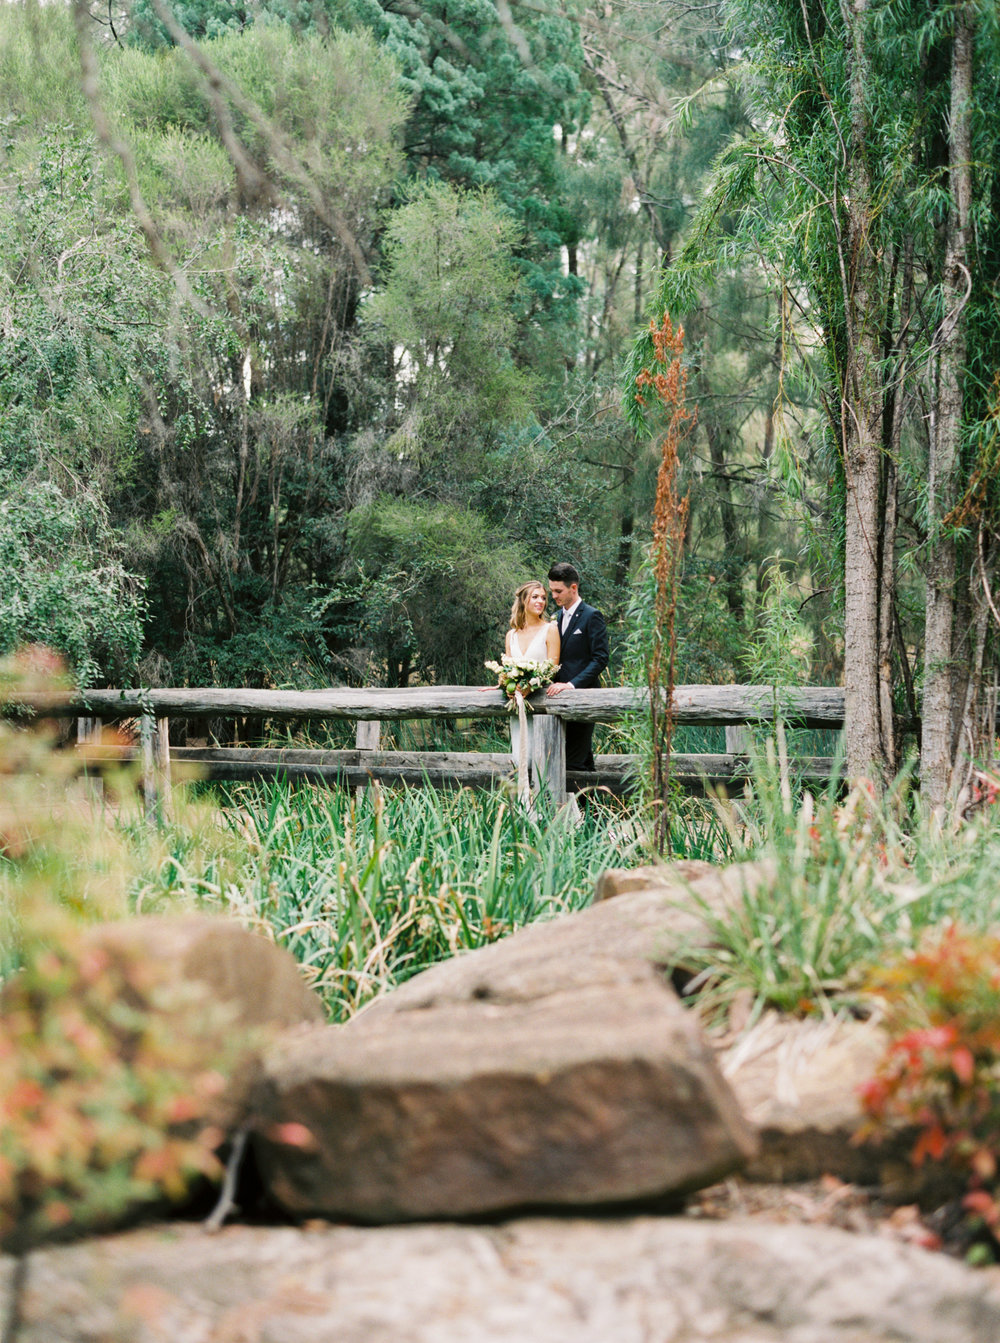 00049- Newcastle NSW Hunter Valley Wedding Photographer Sheri McMahon.jpg